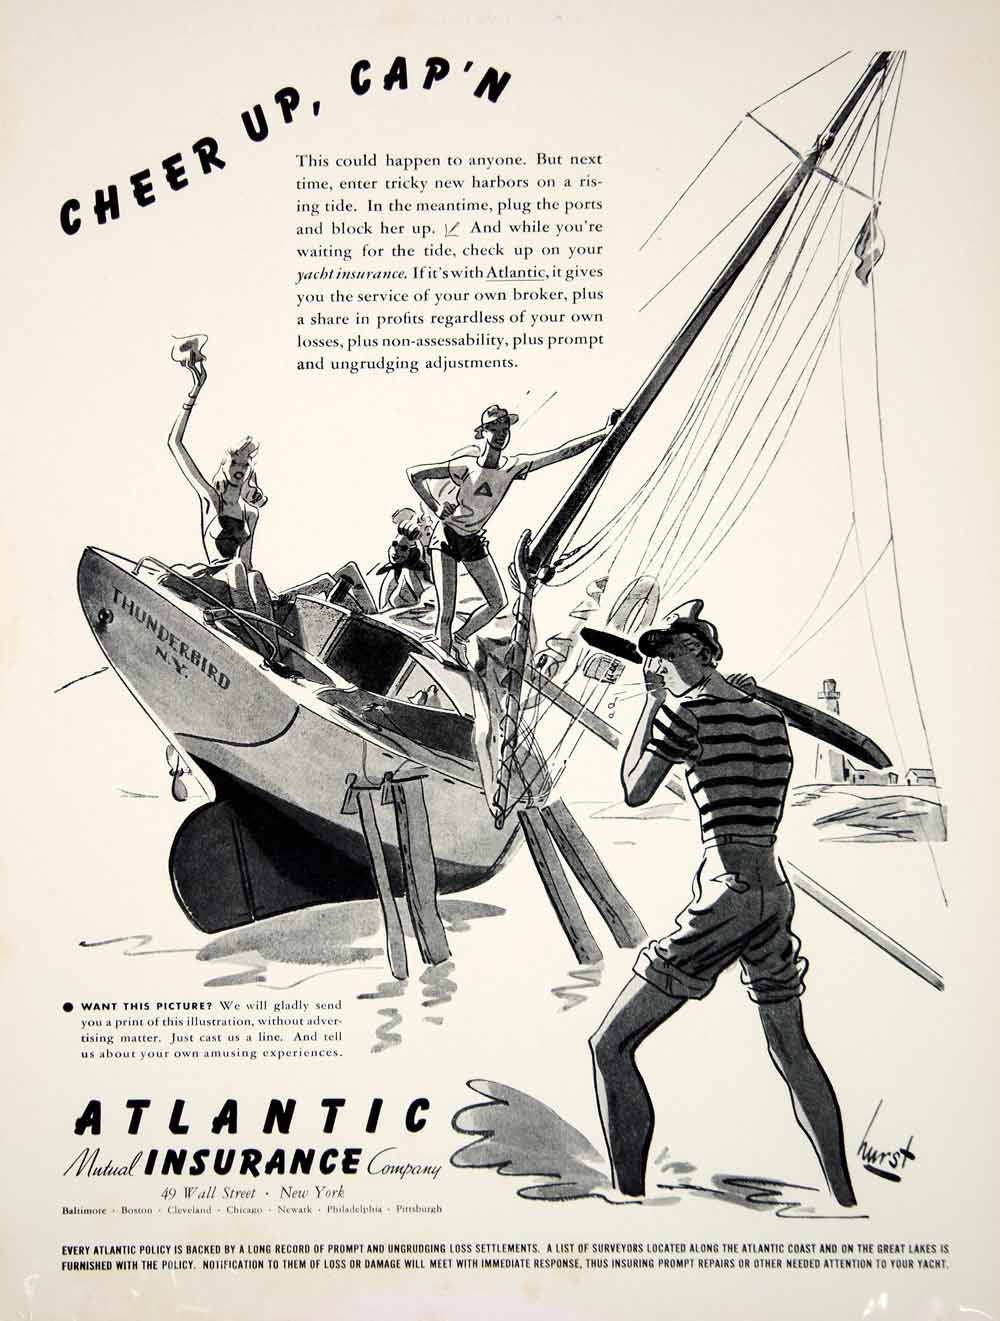 1940 Ad Atlantic Mutual Insurance Yacht Boat Policy Earl Oliver Hurst Cartoon